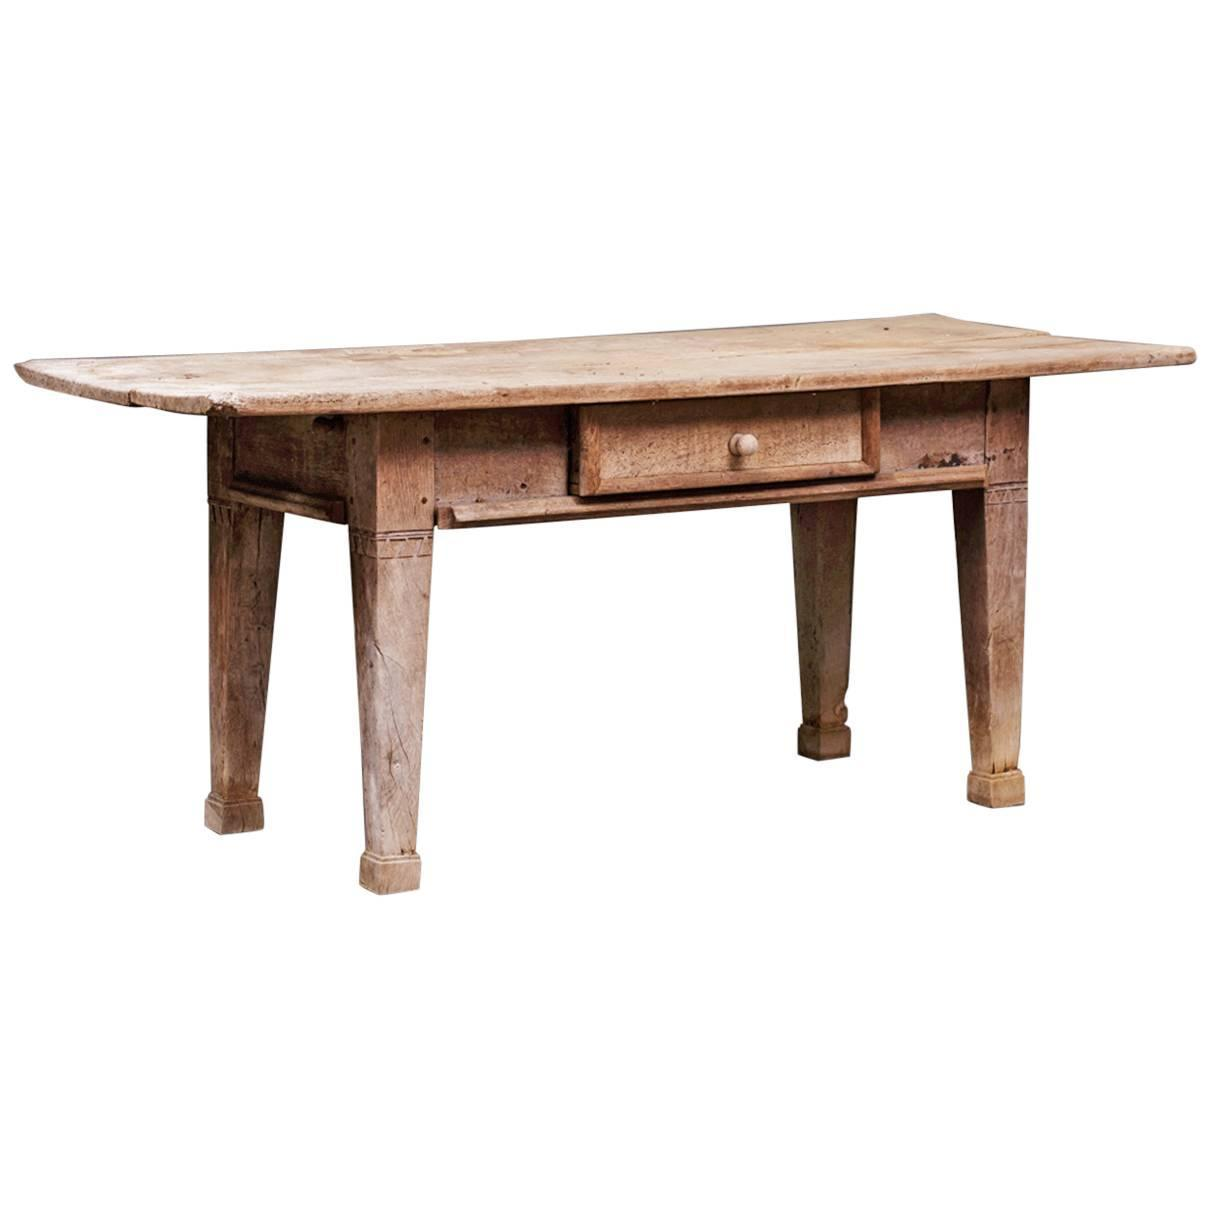 Scandinavian rustic farm tavern table circa 1800 or for Rustic farm tables for sale